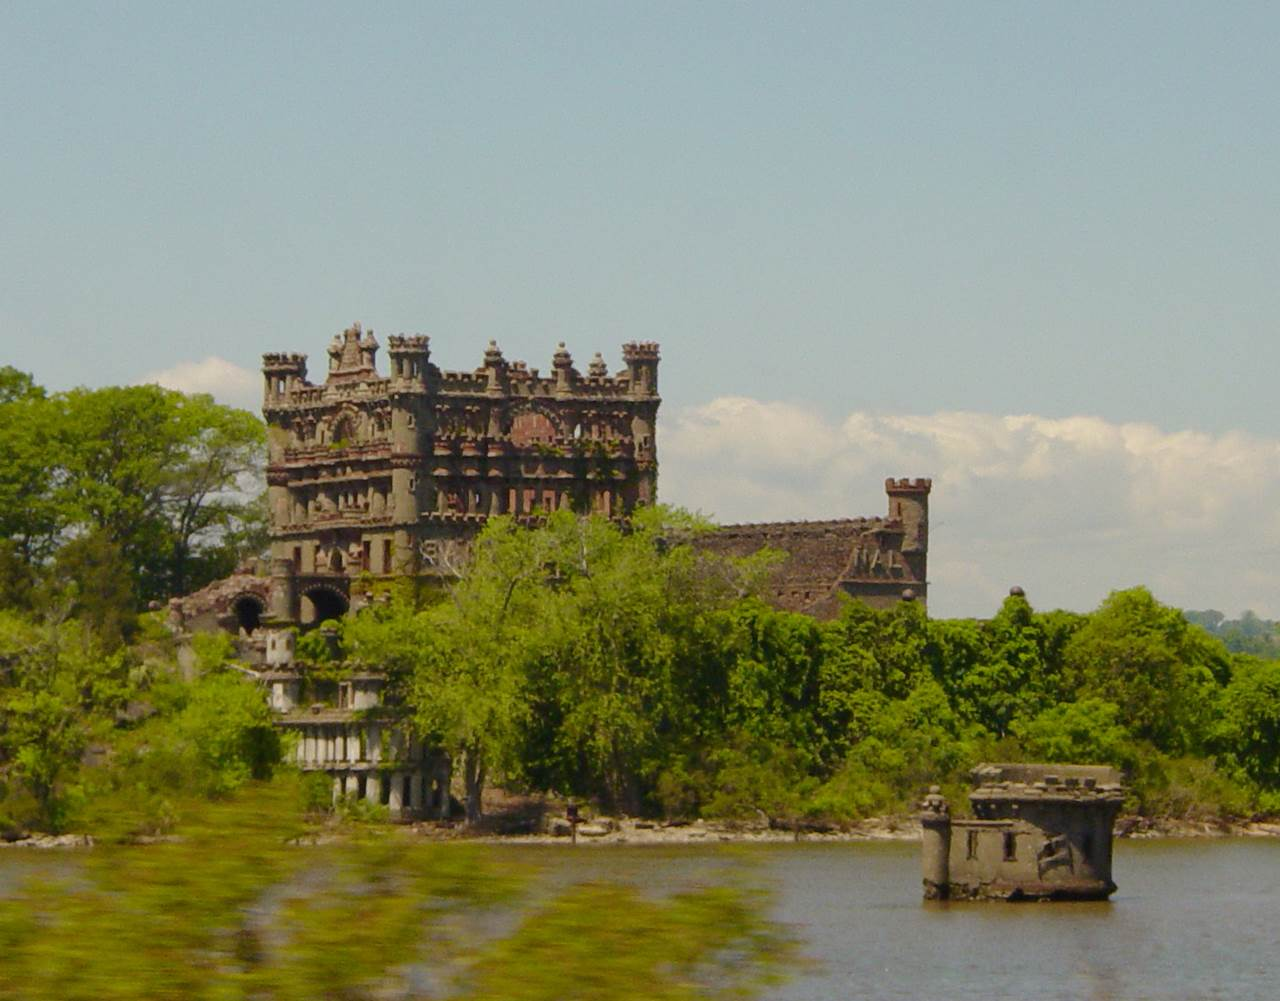 Castle On An Island In The Hudson River